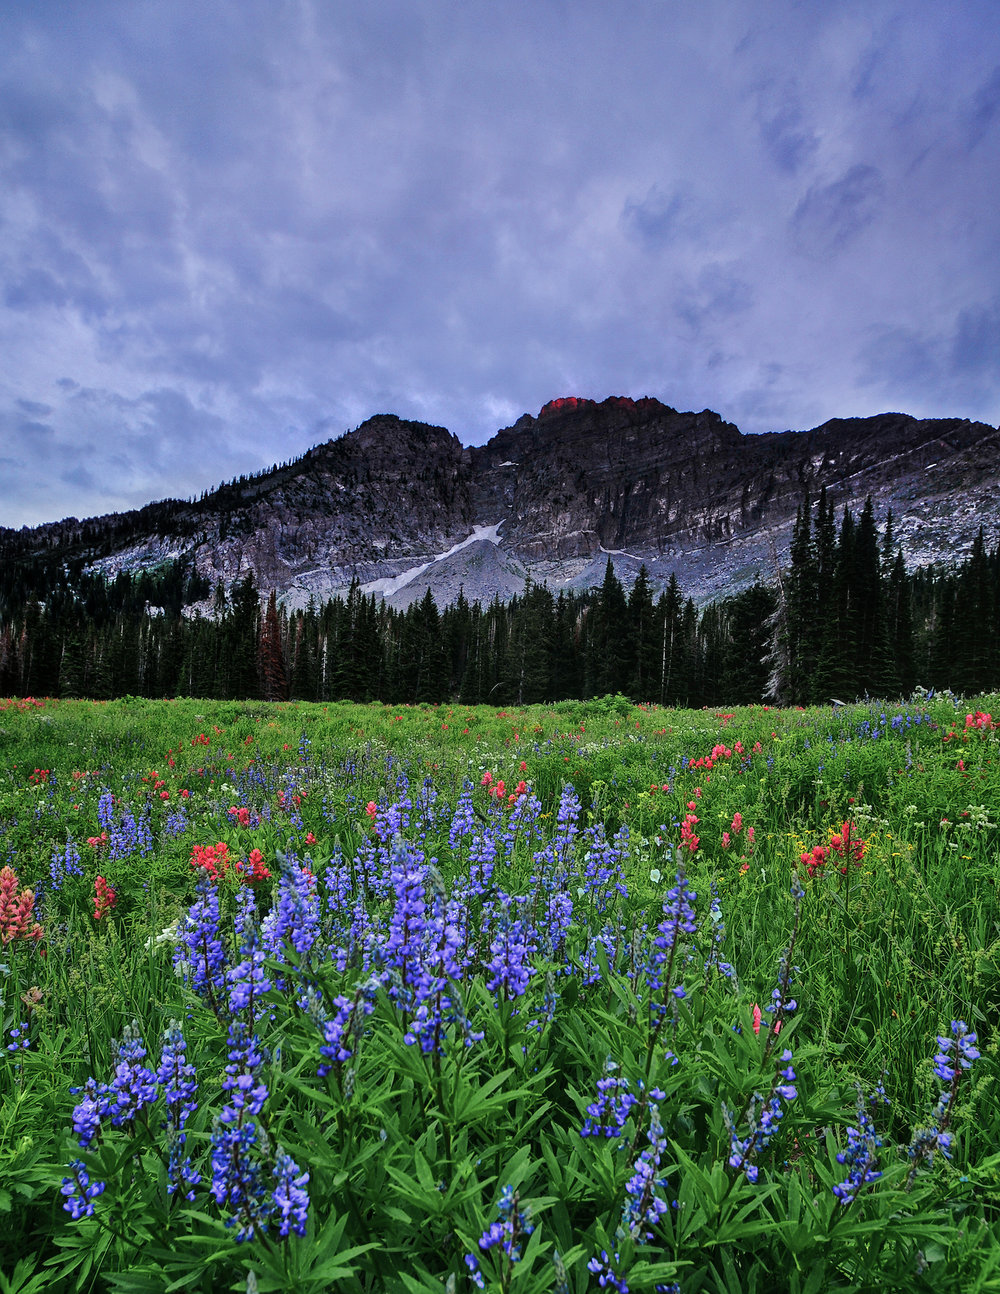 Wildflowers and Showers